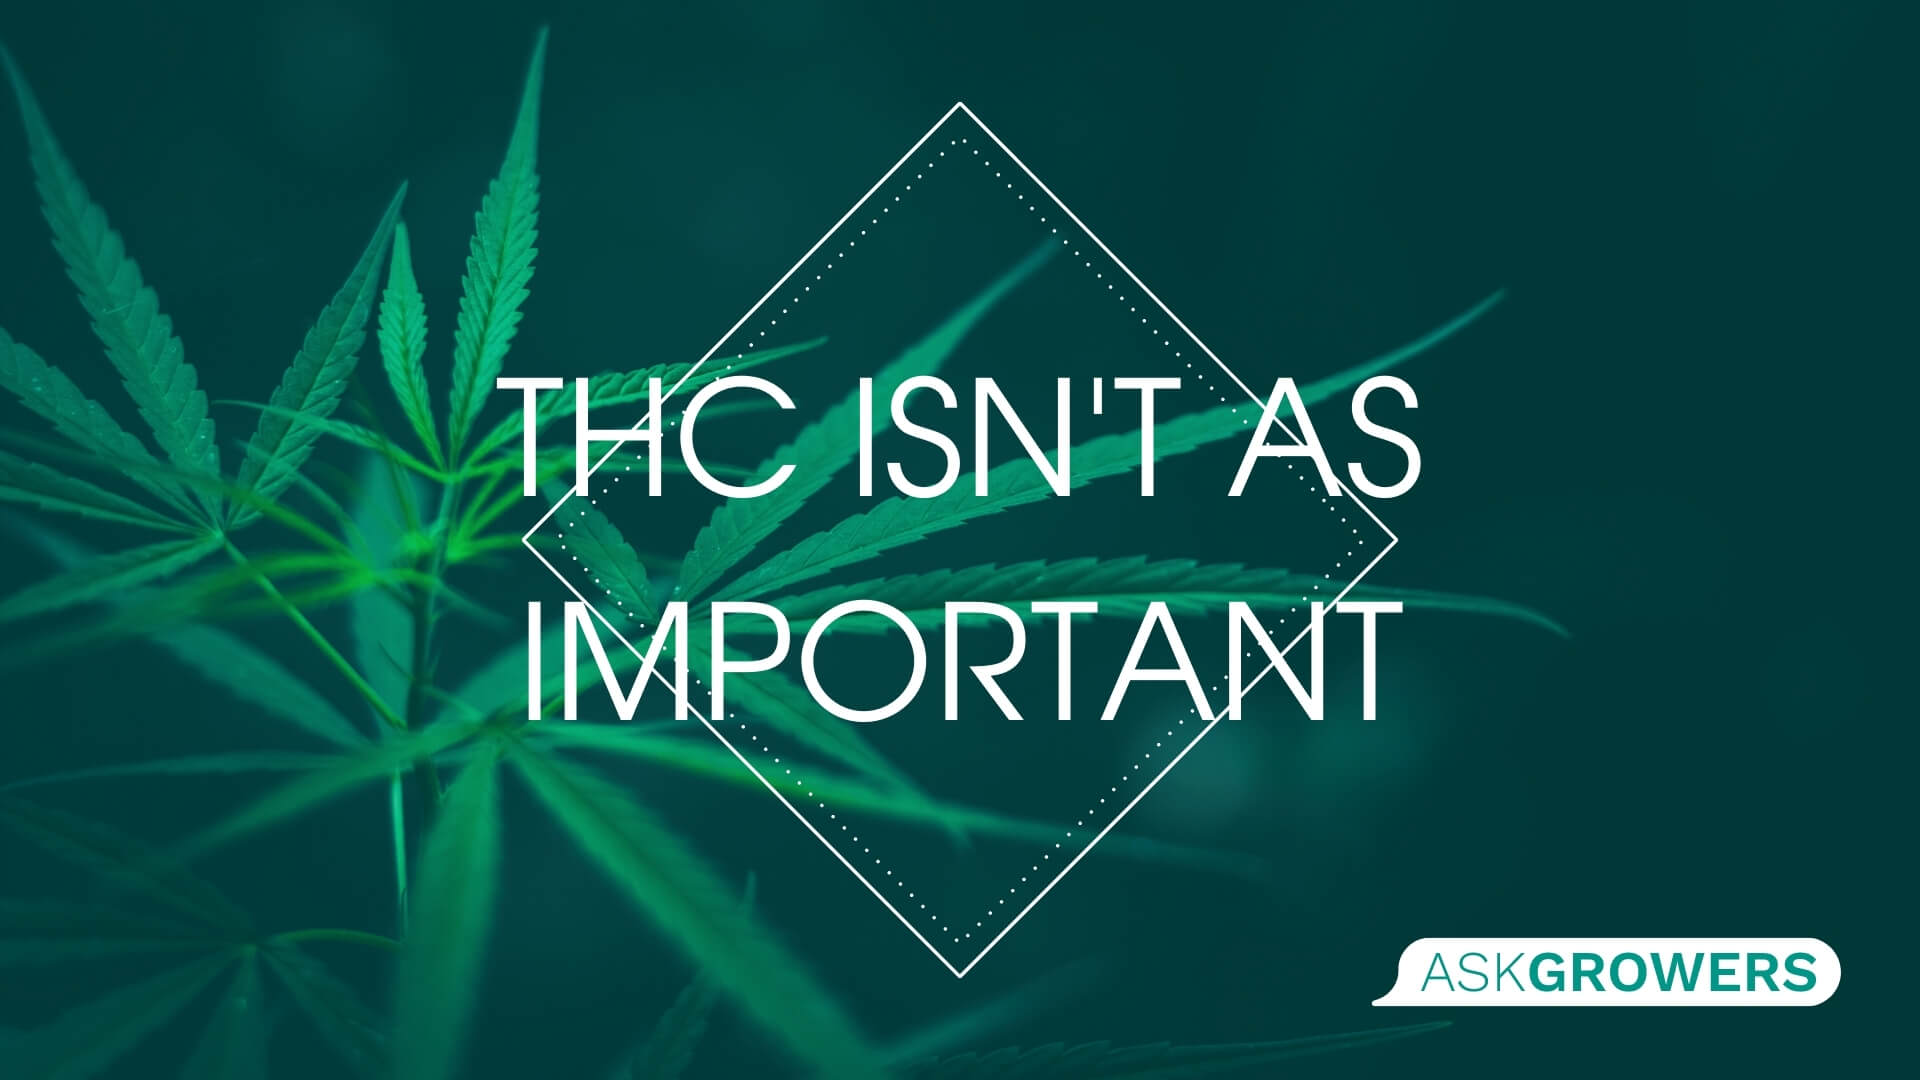 THC Isn't As Important, AskGrowers